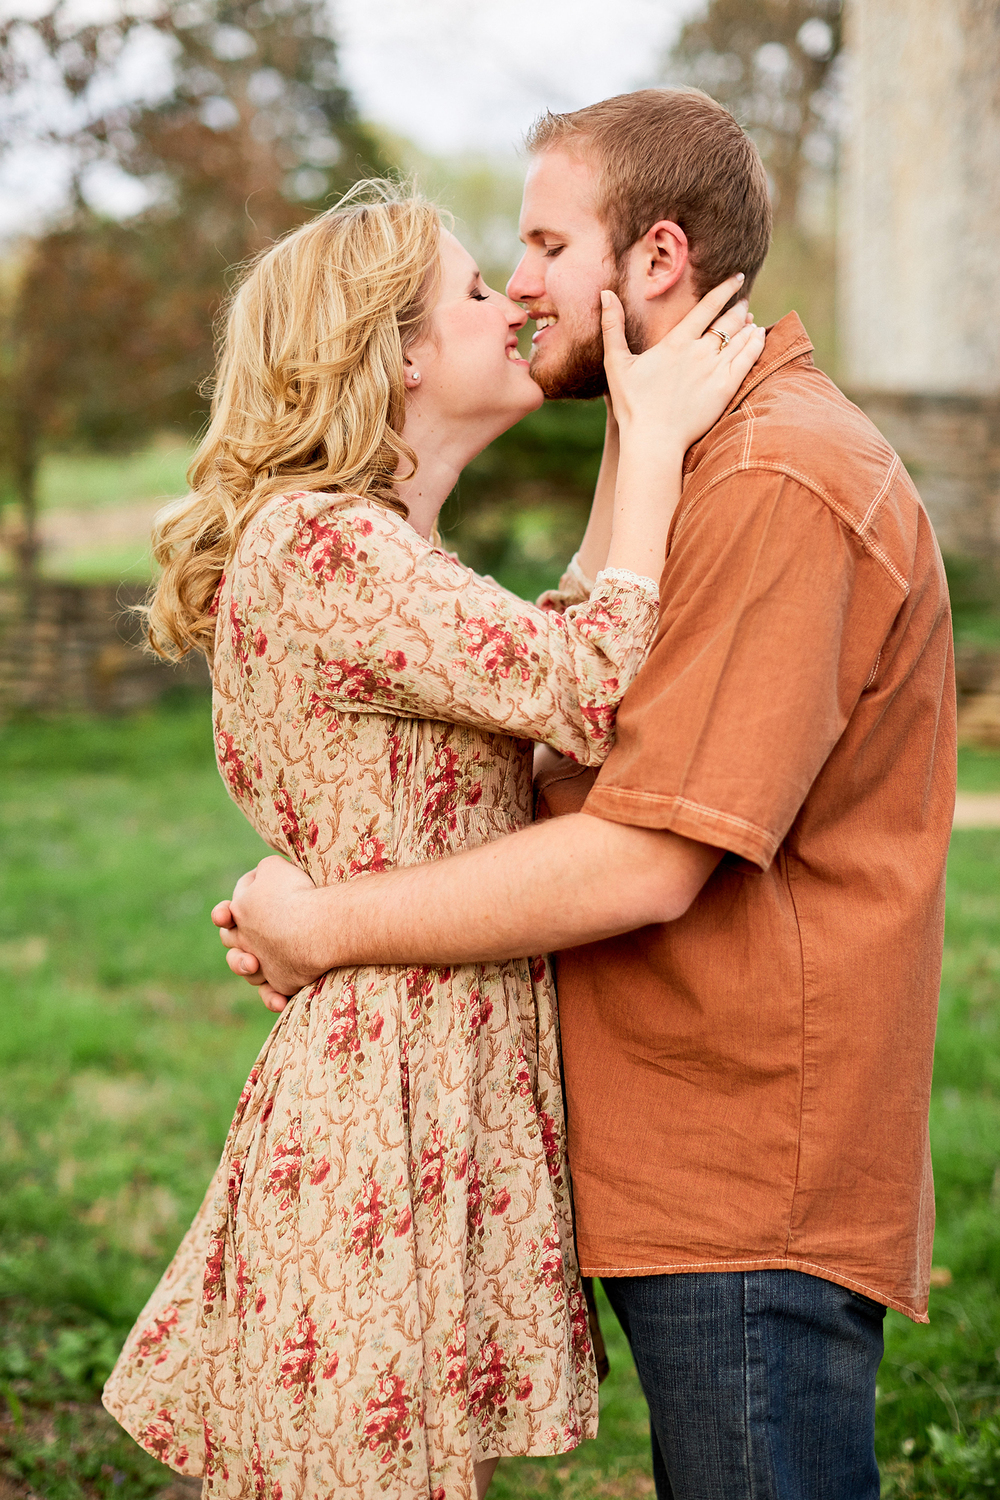 Daniel Boone Home Engagement Session in St Charles County by Oldani Photography St. Louis Wedding Photographers21.jpg